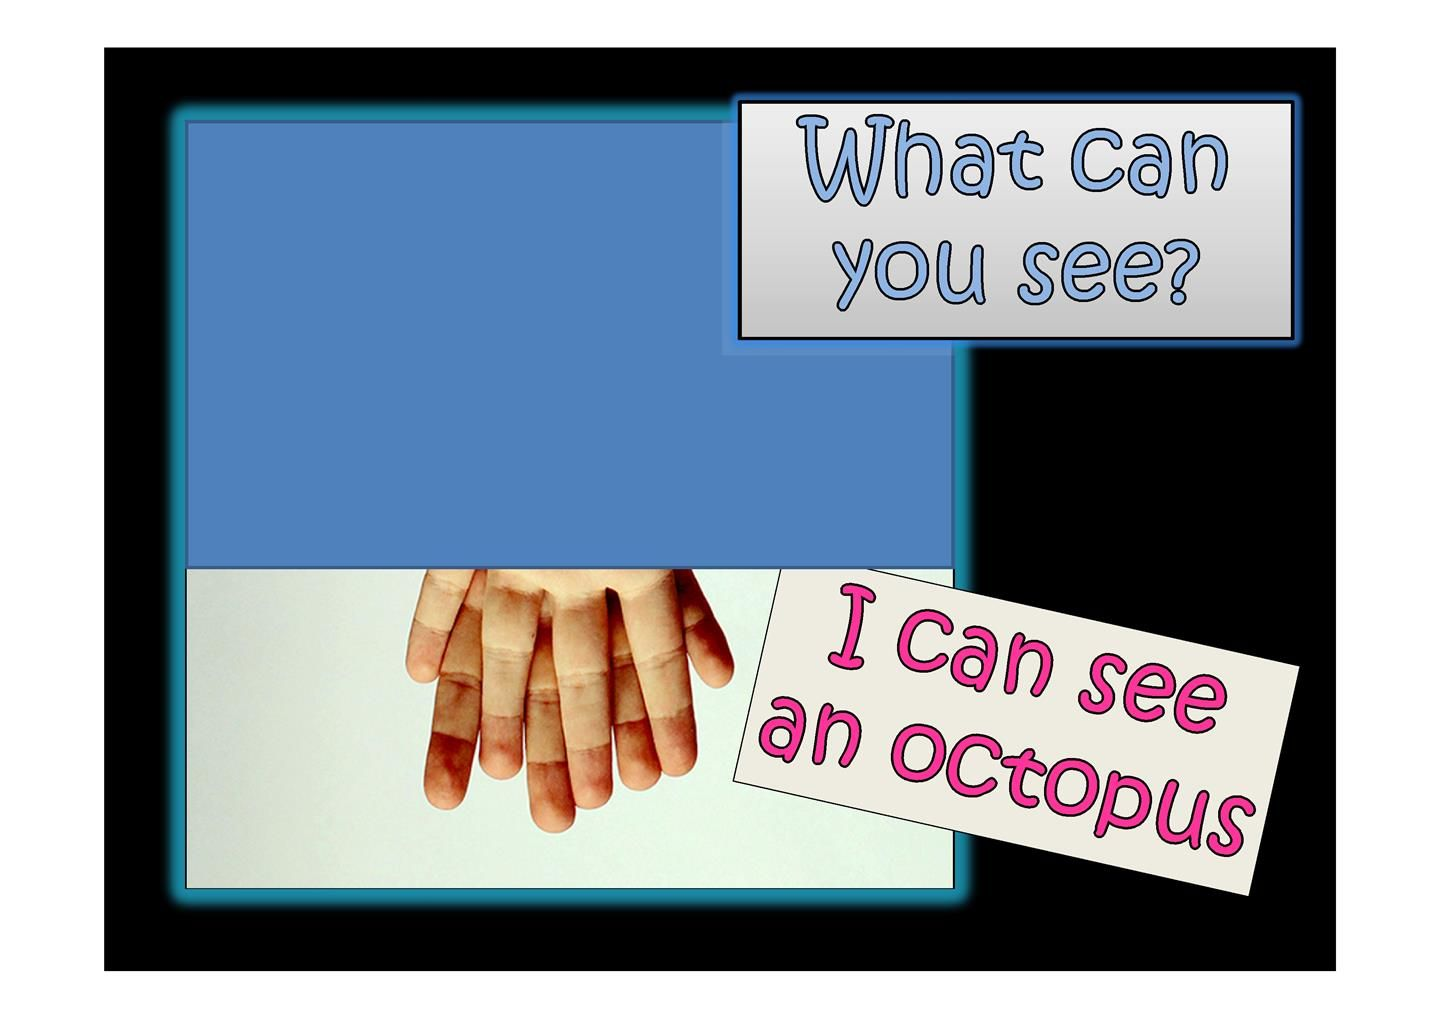 What Can You See